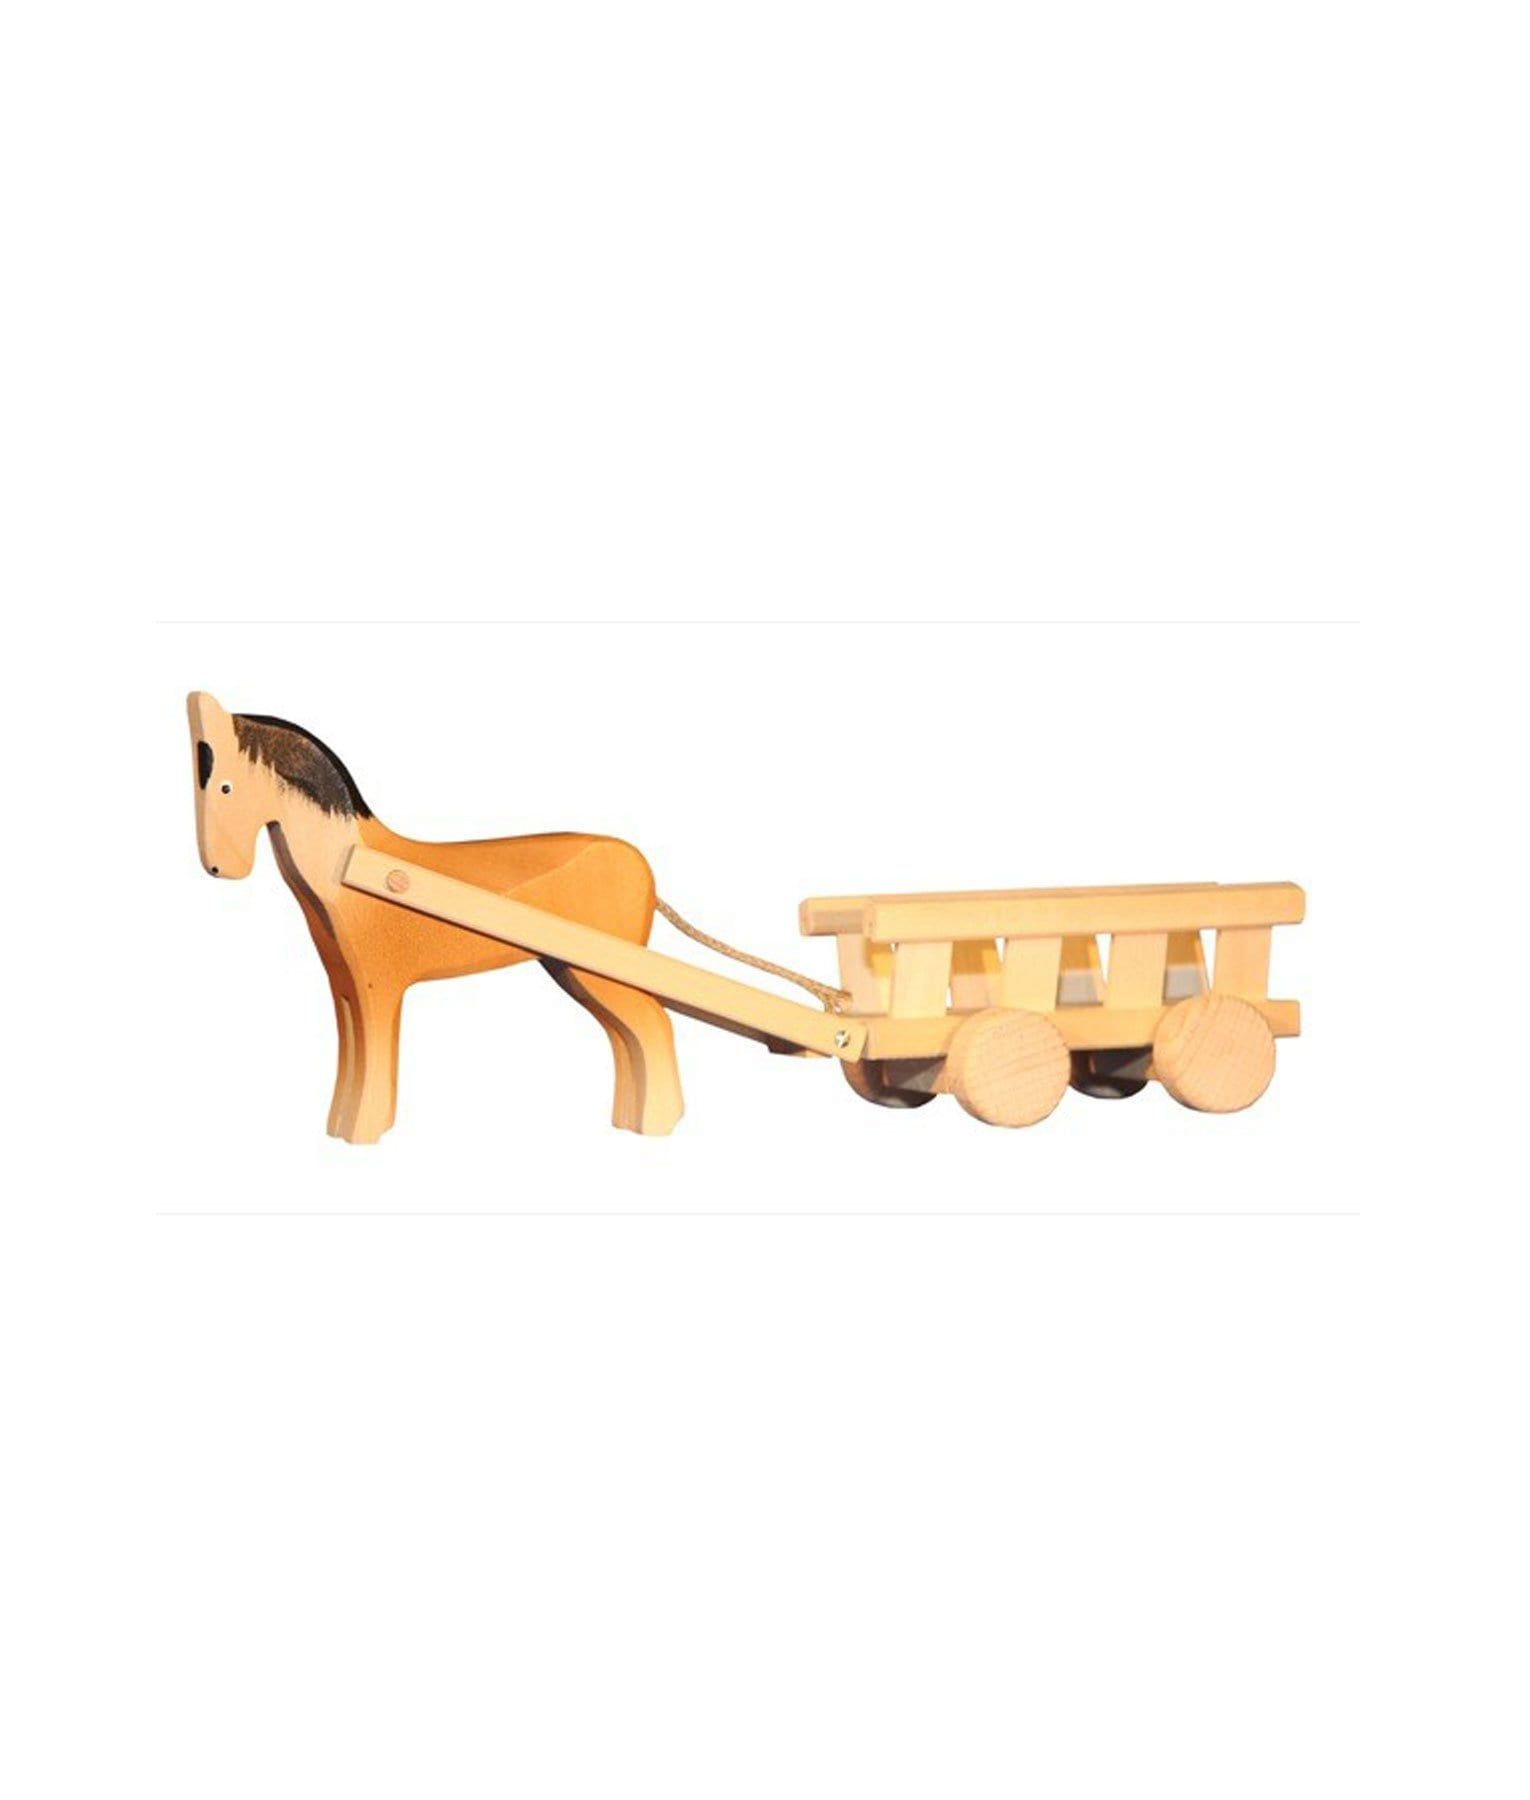 the-wooden-horse-with-cart-trauffer